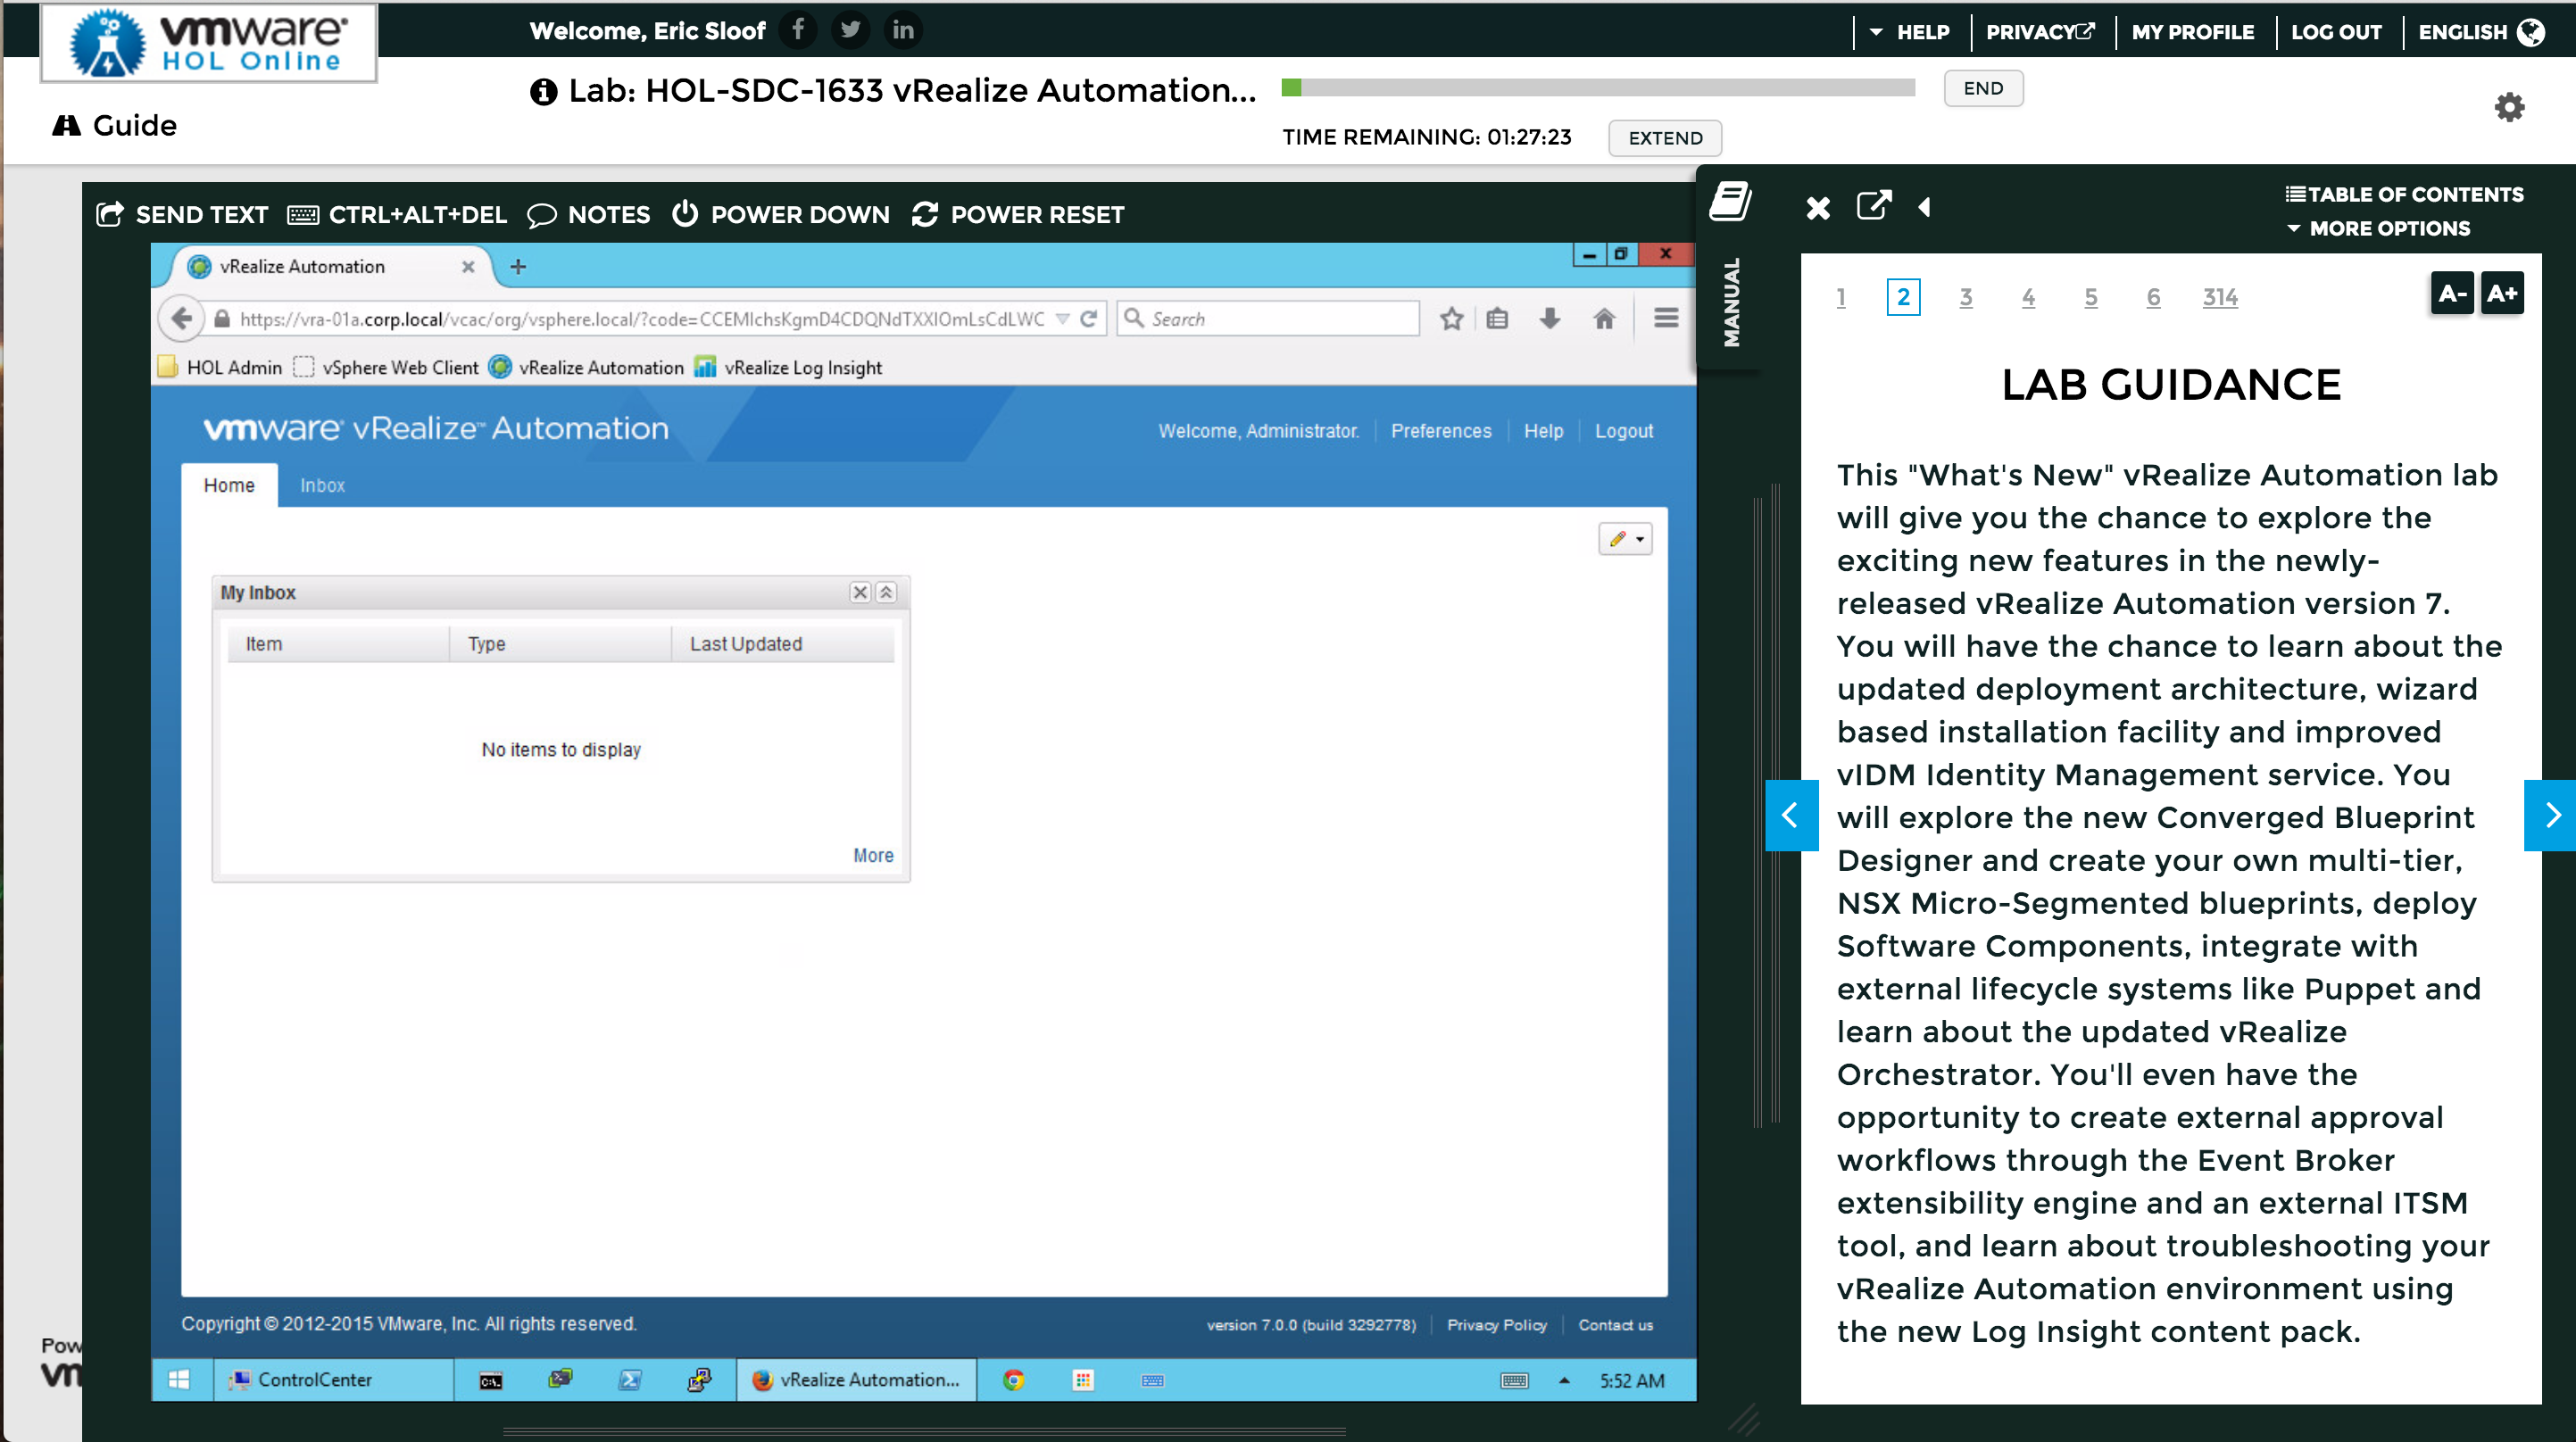 Vmware hol online has released vrealize automation 7 whats new you will explore the new converged blueprint designer and create your own multi tier nsx micro segmented blueprints deploy software components malvernweather Image collections